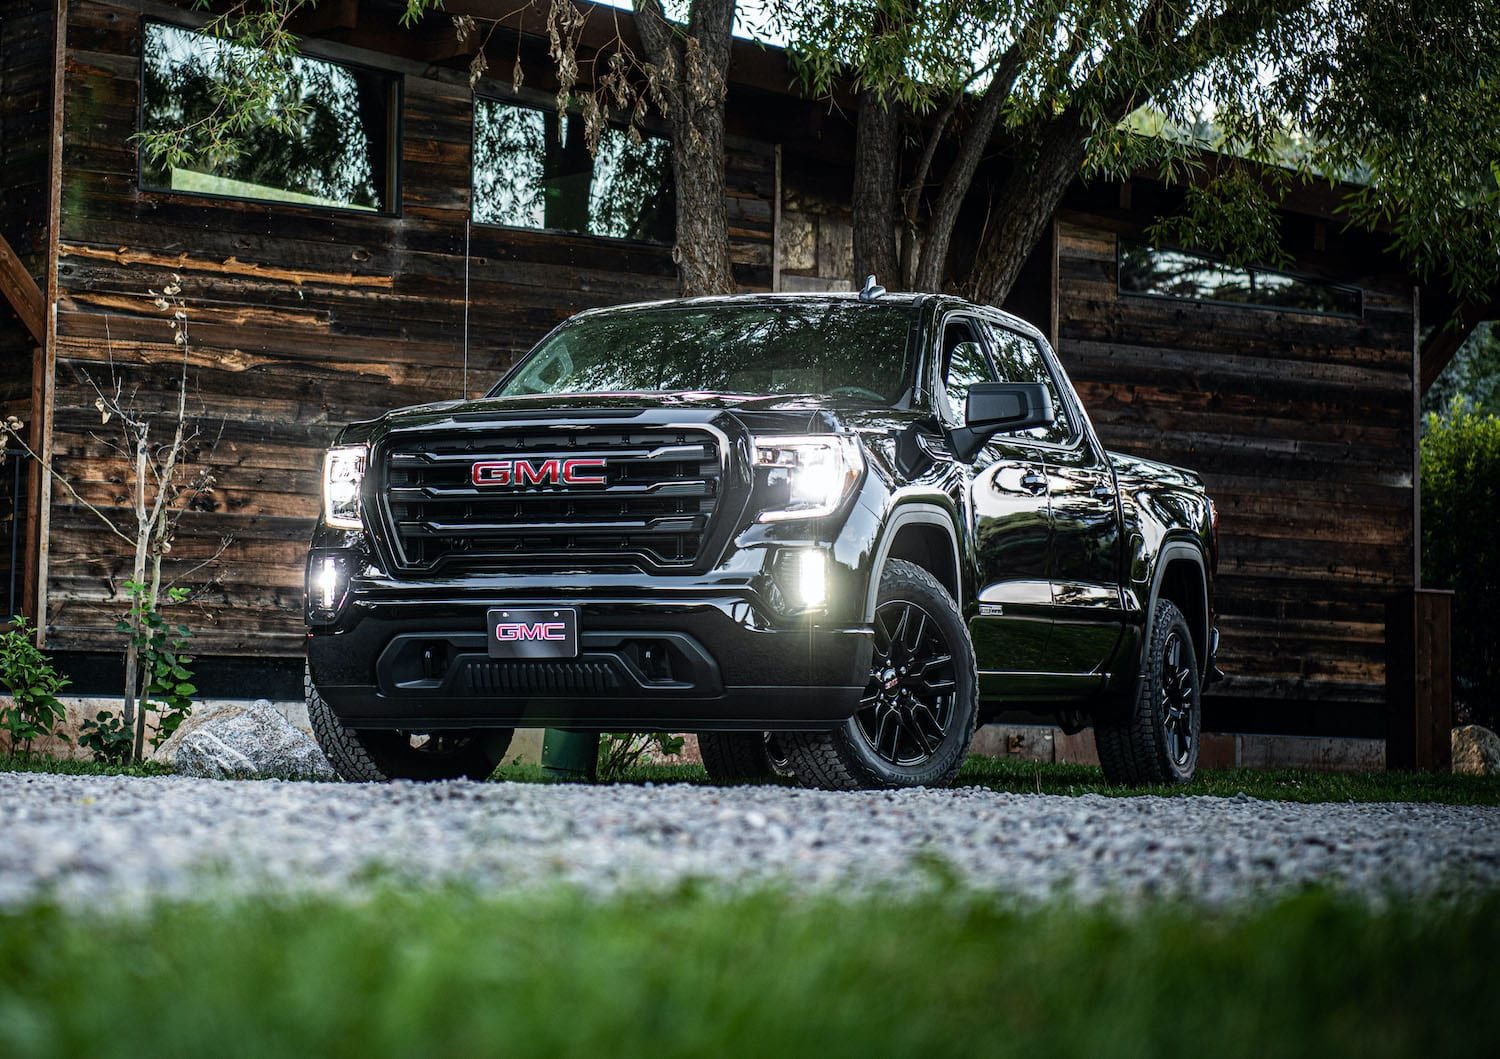 2020 GMC Sierra Elevation